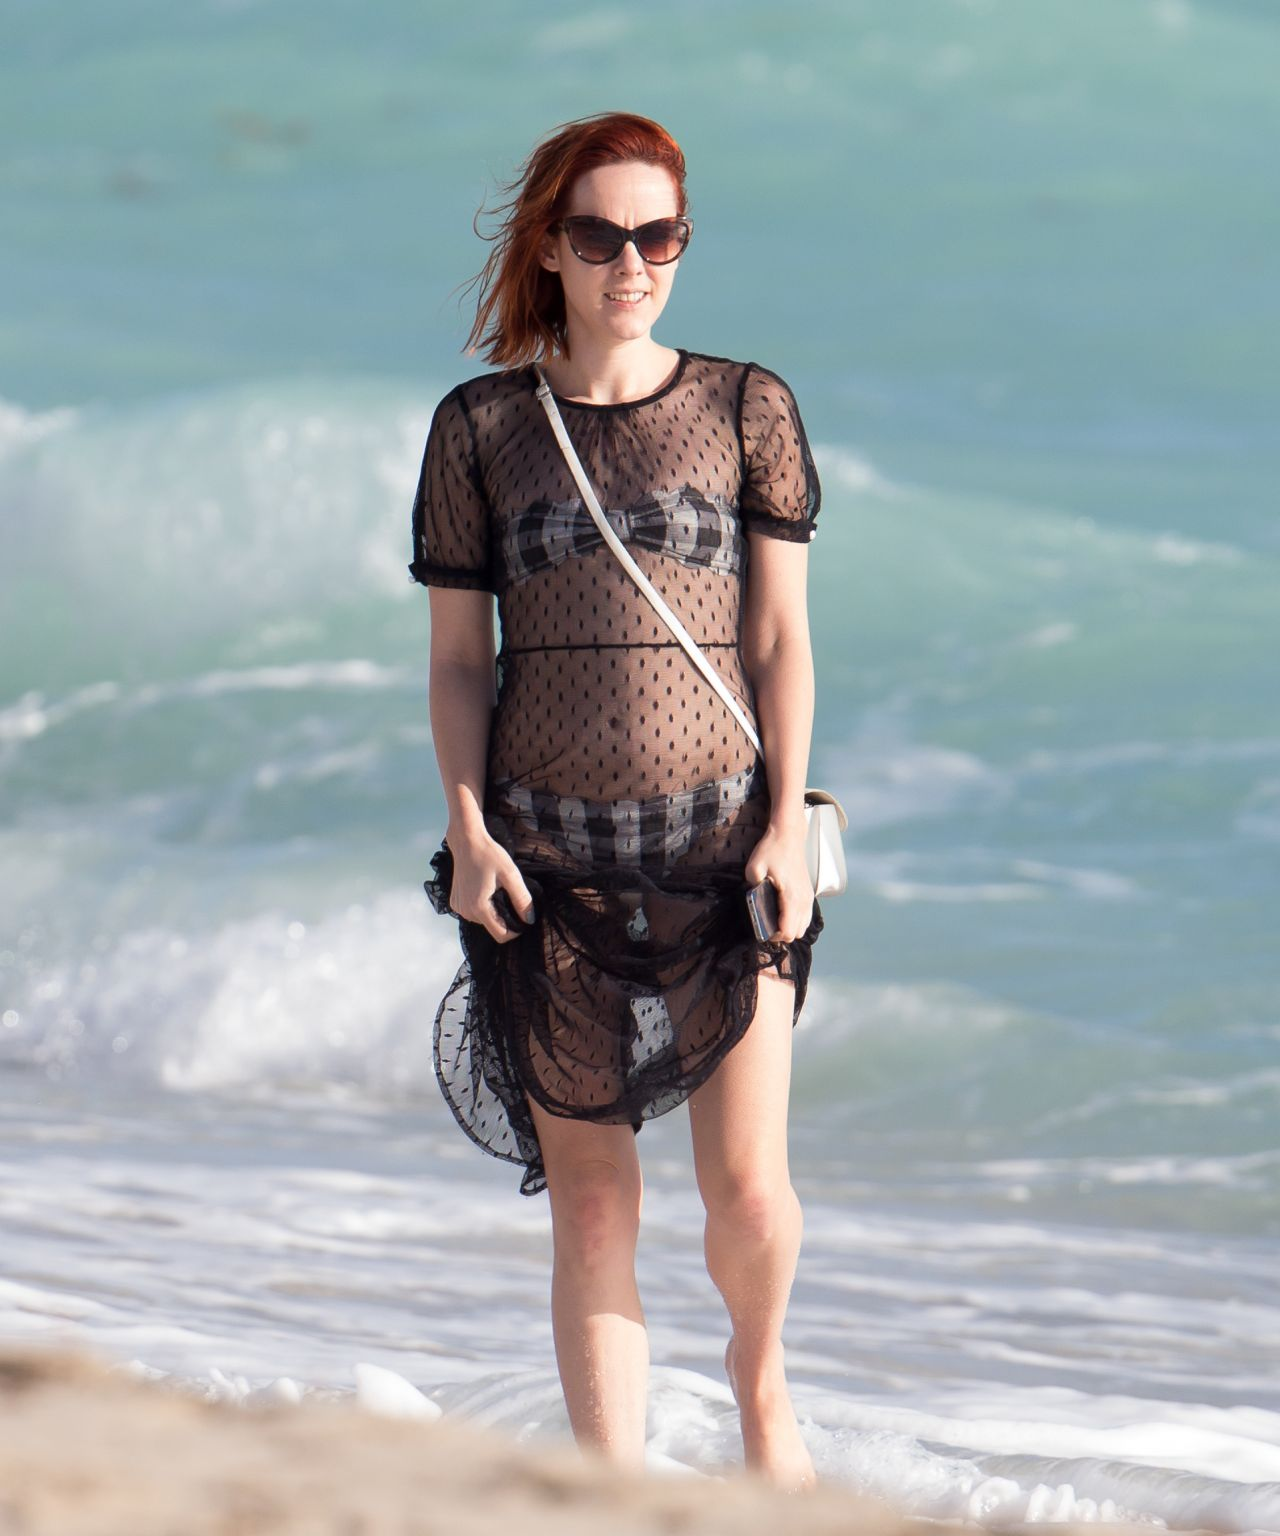 Jena Malone Bikini Candids - Beach in Miami, December 2014